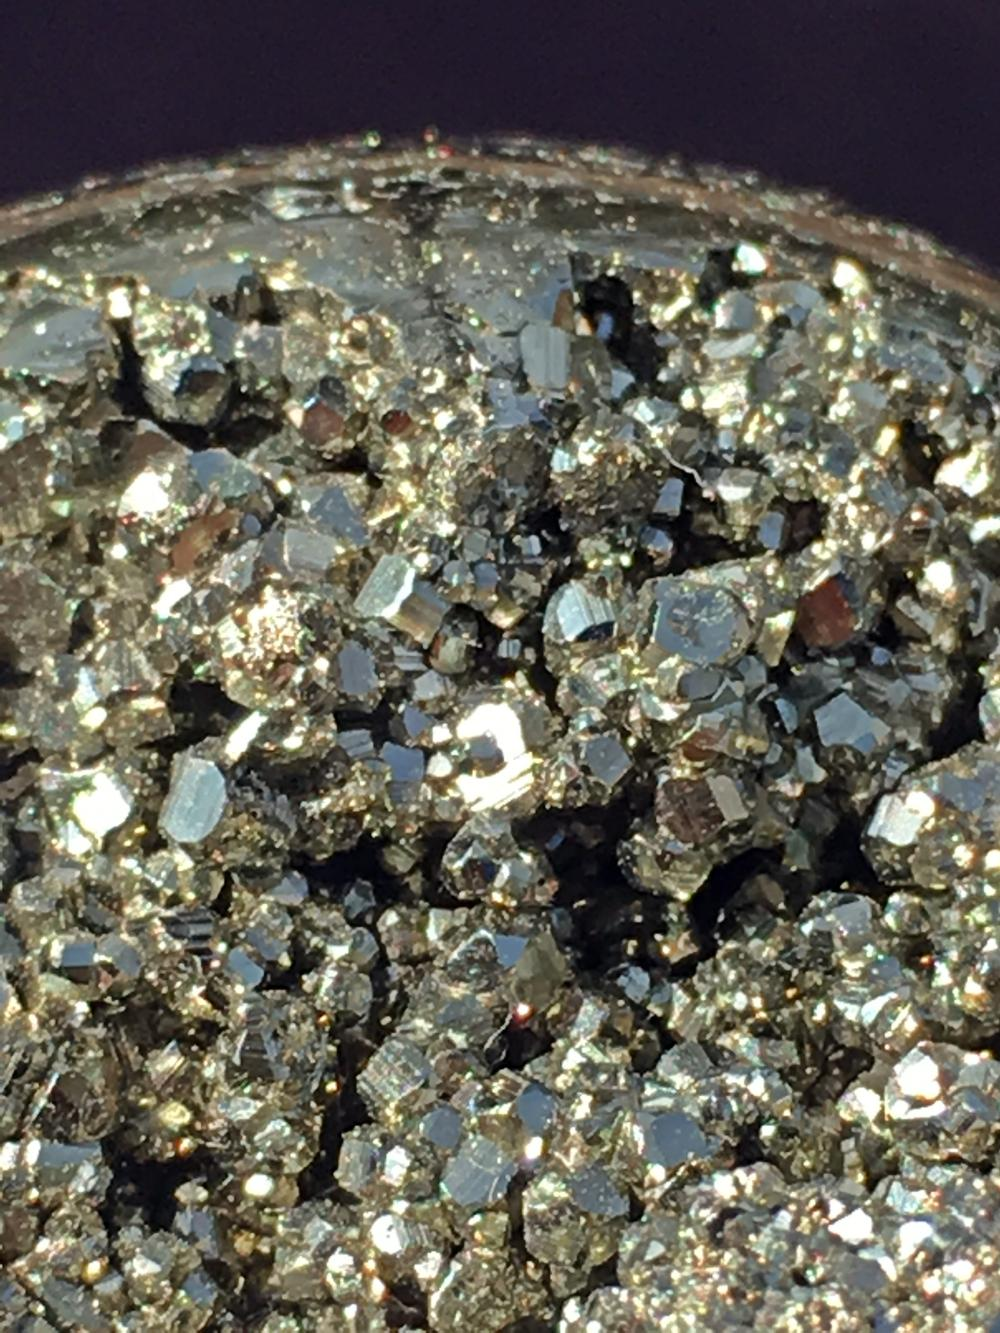 Lot 71: Pyrite, Rock, Crystal, Natural, Décor, Collectible, Carving, Sphere